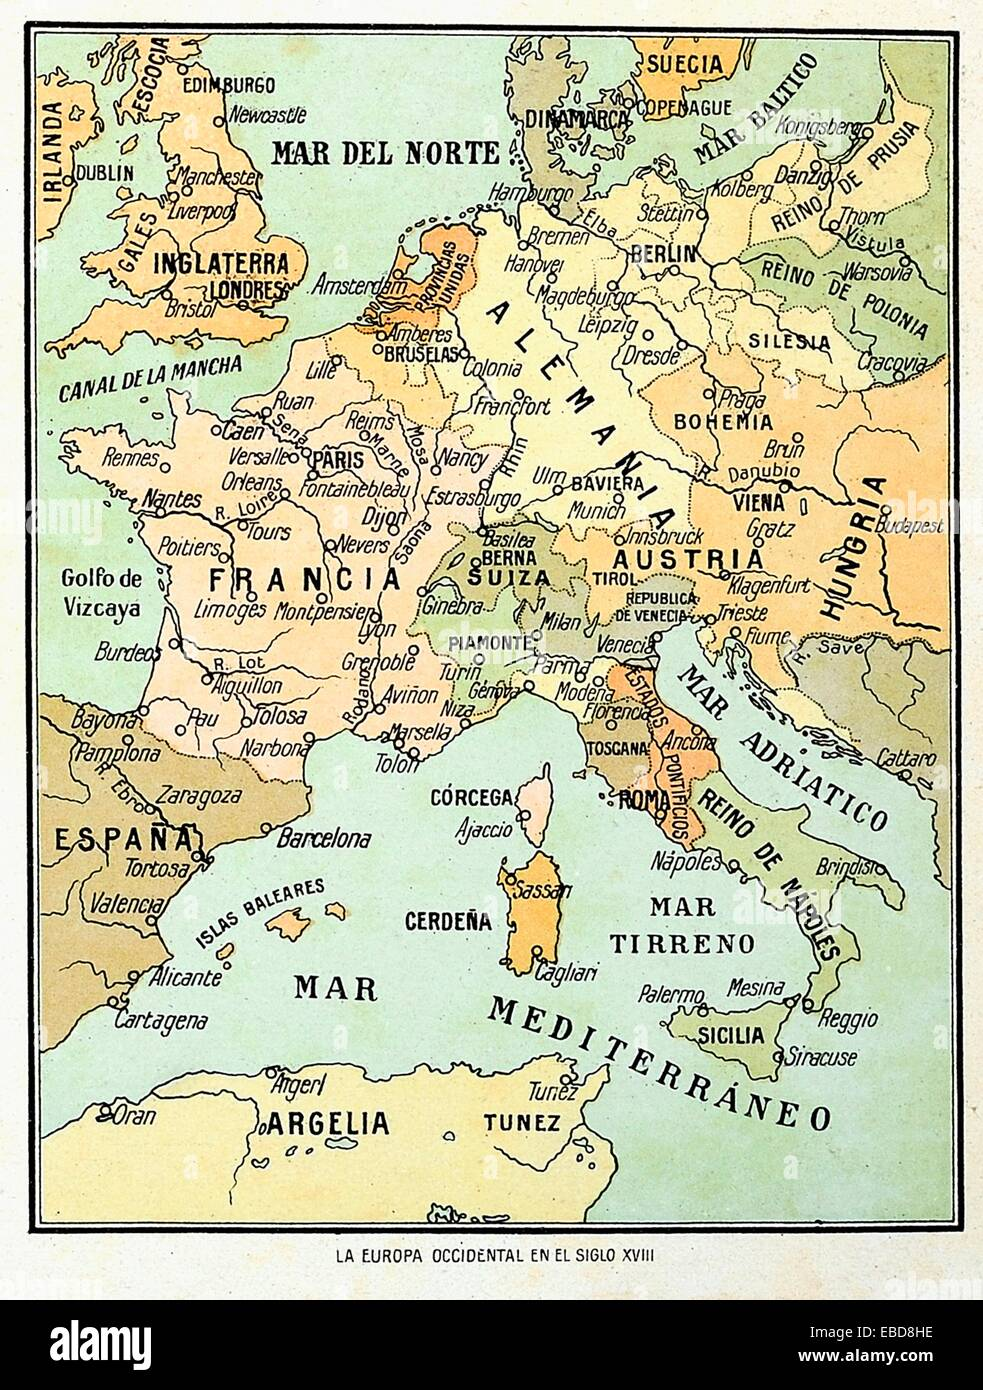 Map Of Western Europe In The 18th Century   Stock Image